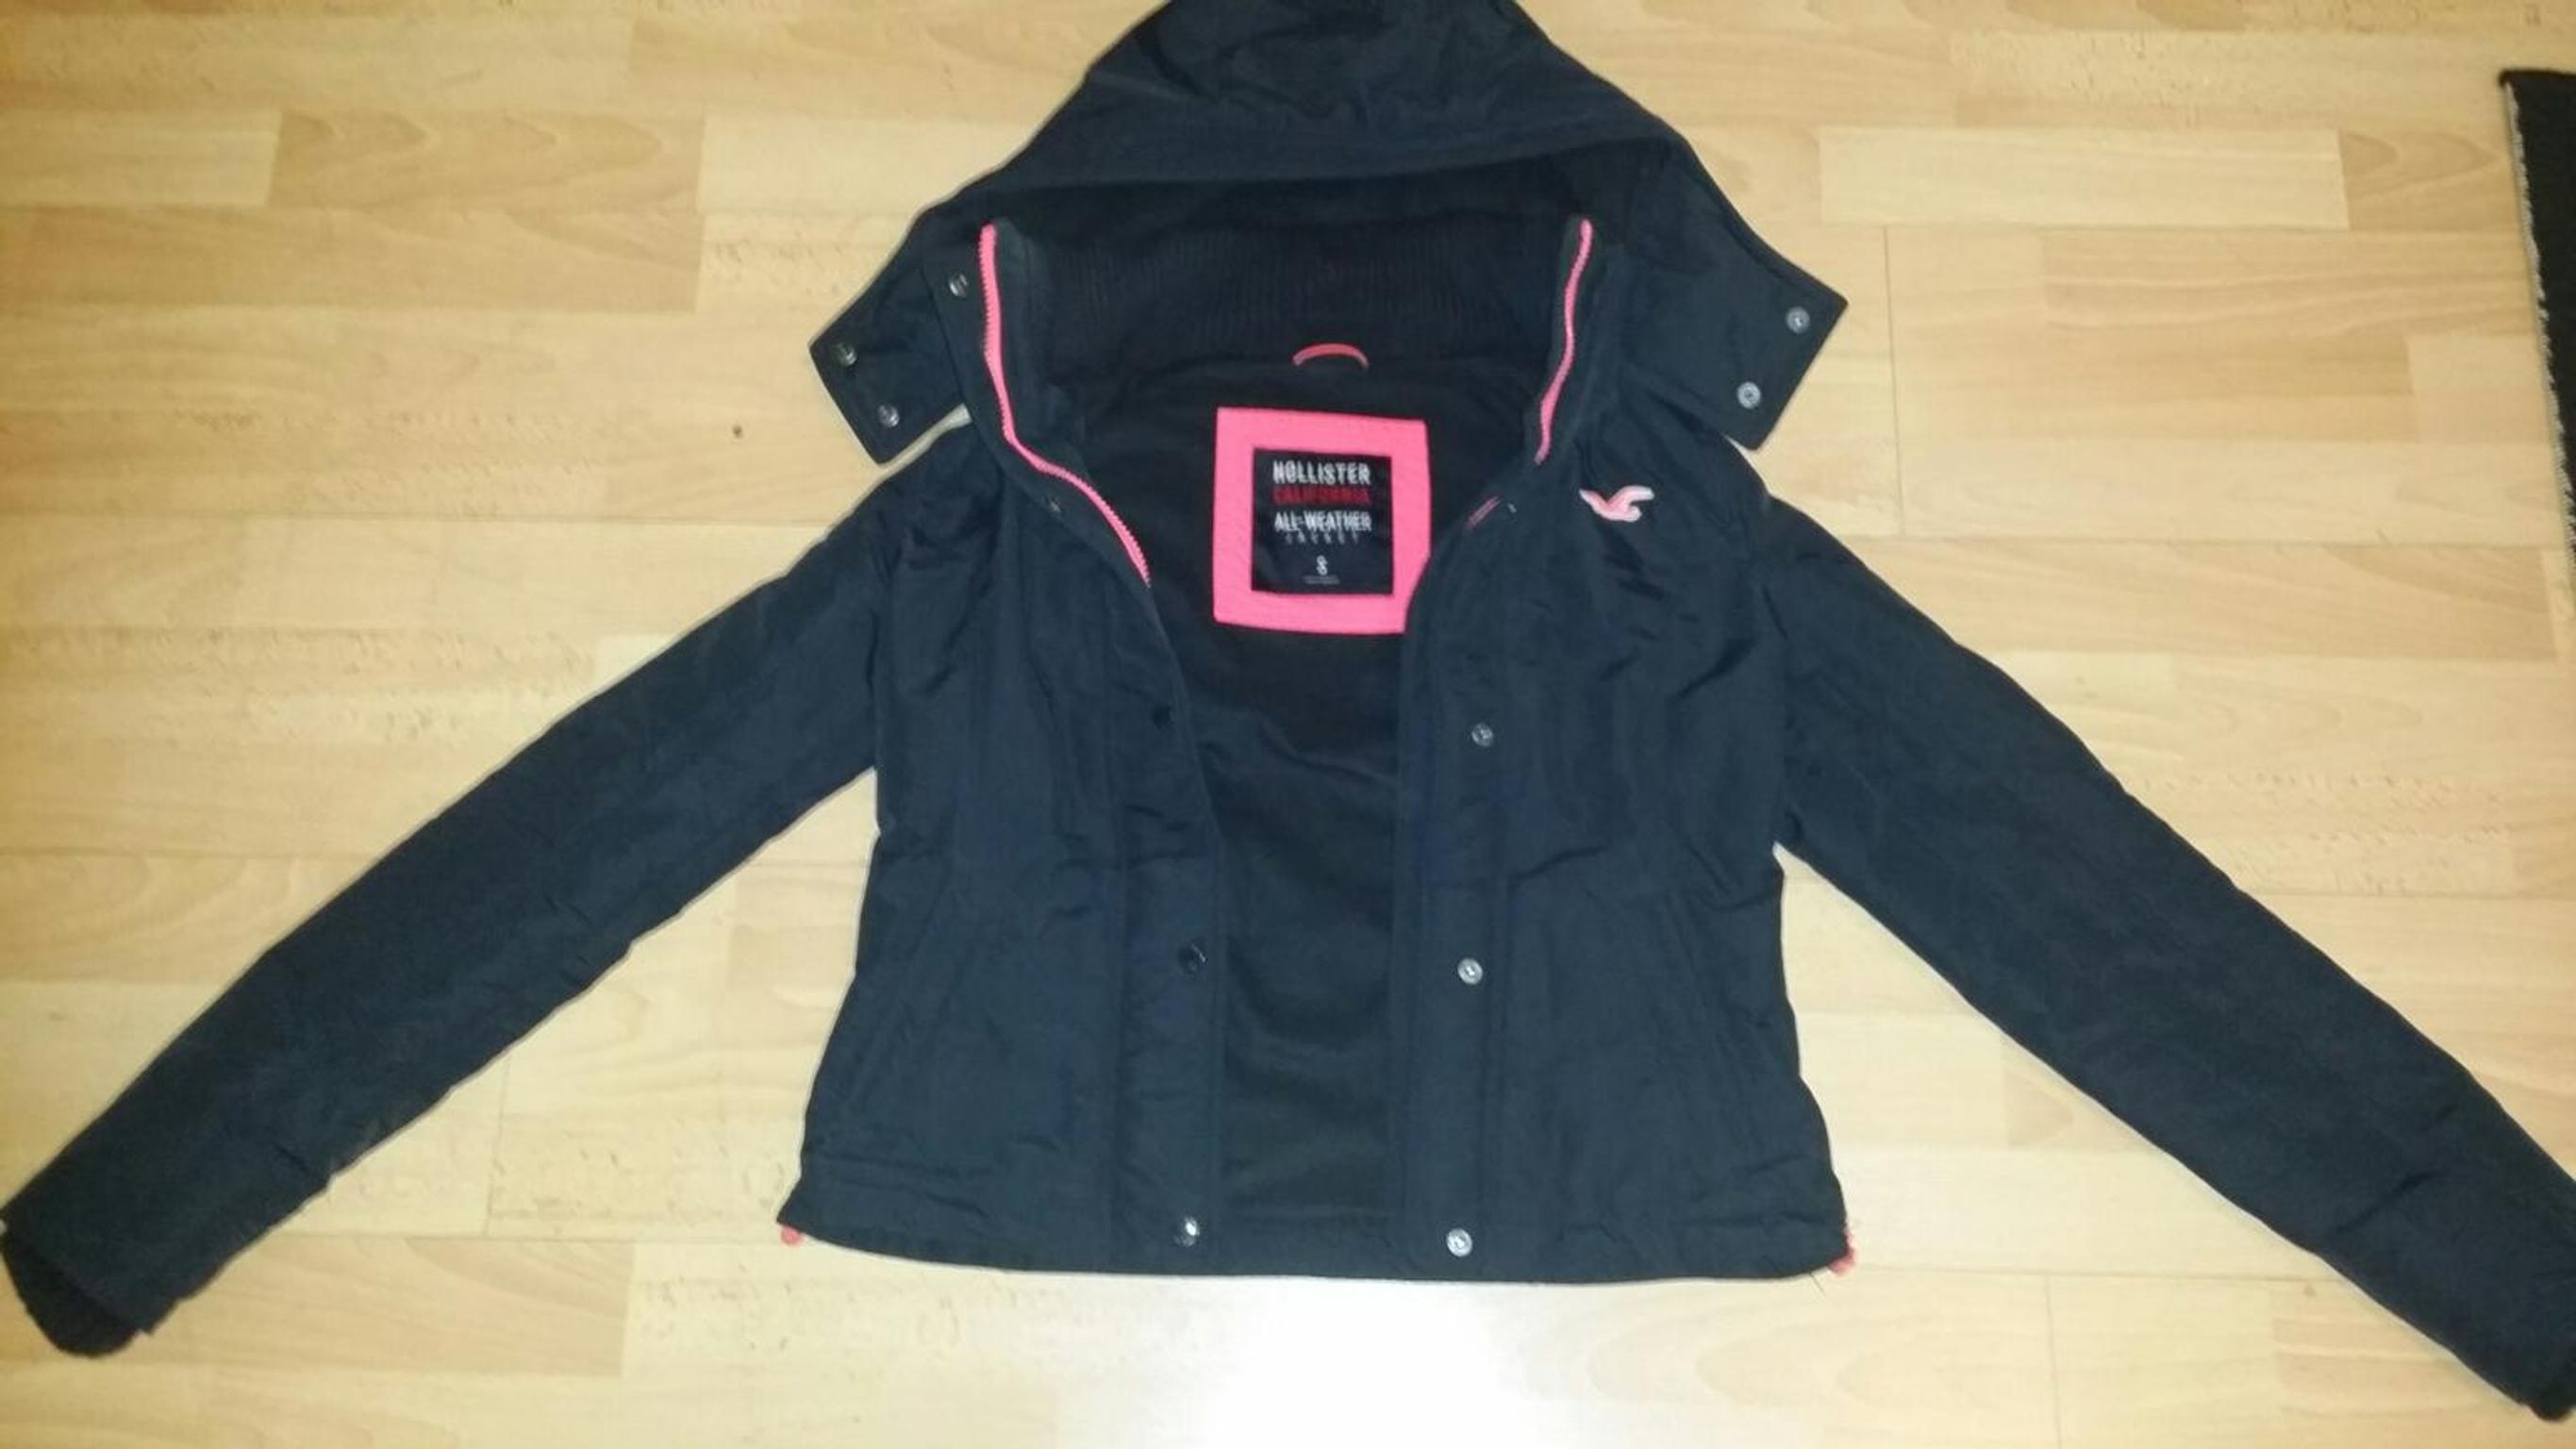 HOLLISTER All Weather Jacket d.blaupinkGr.S